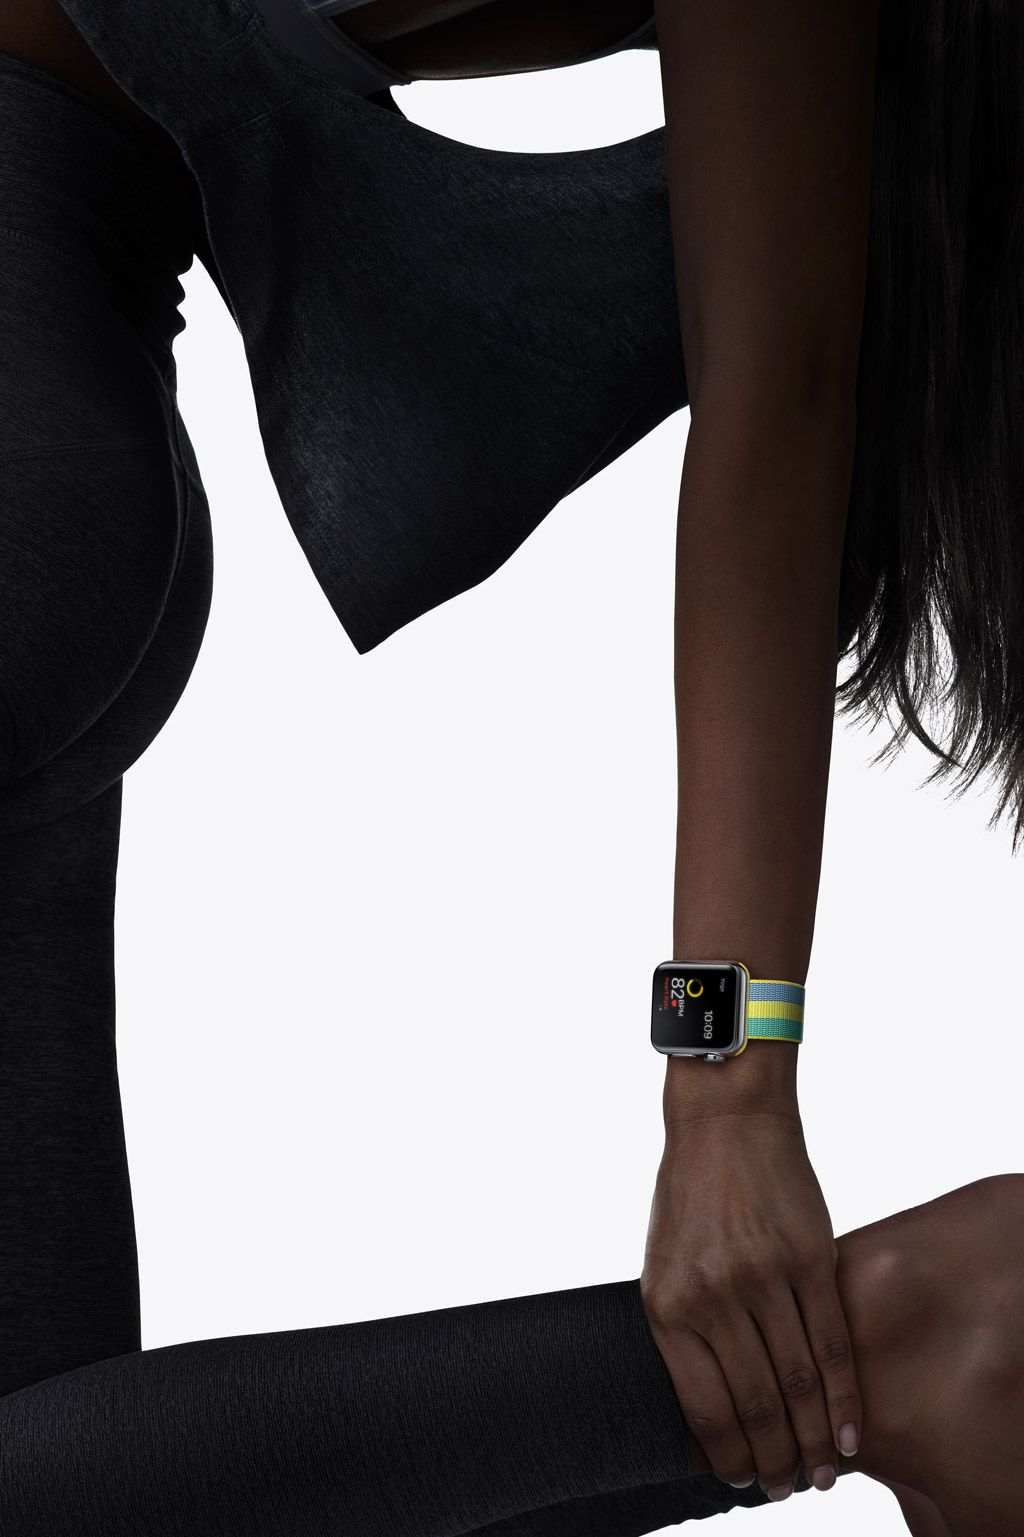 Apple Watch Powerful Health Tool Product Image